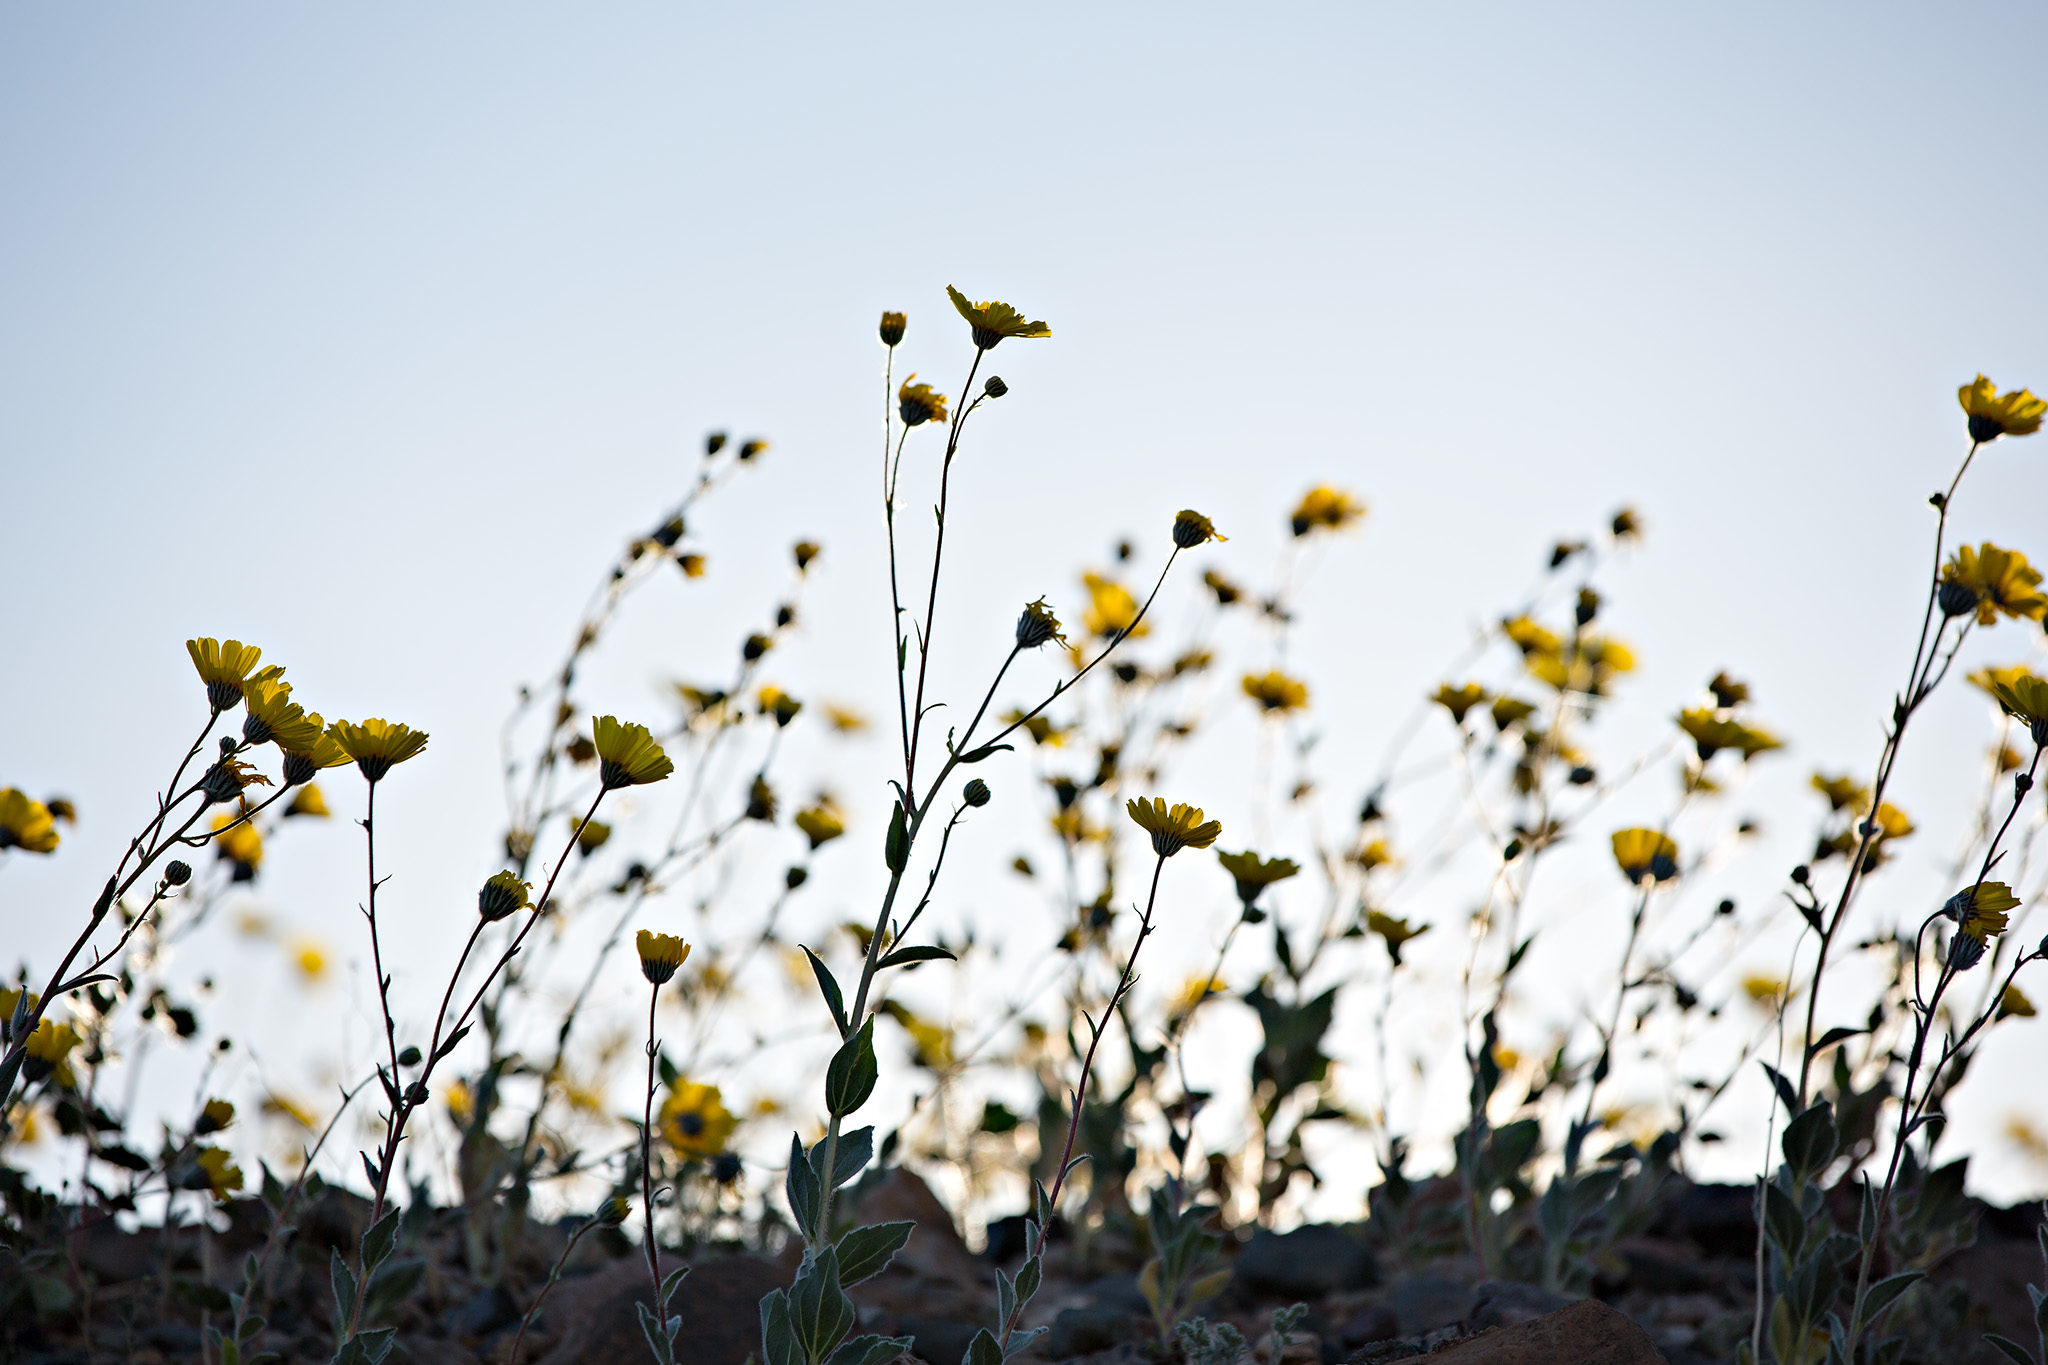 Silhouttes of <i>Geraea canescens</i> plants